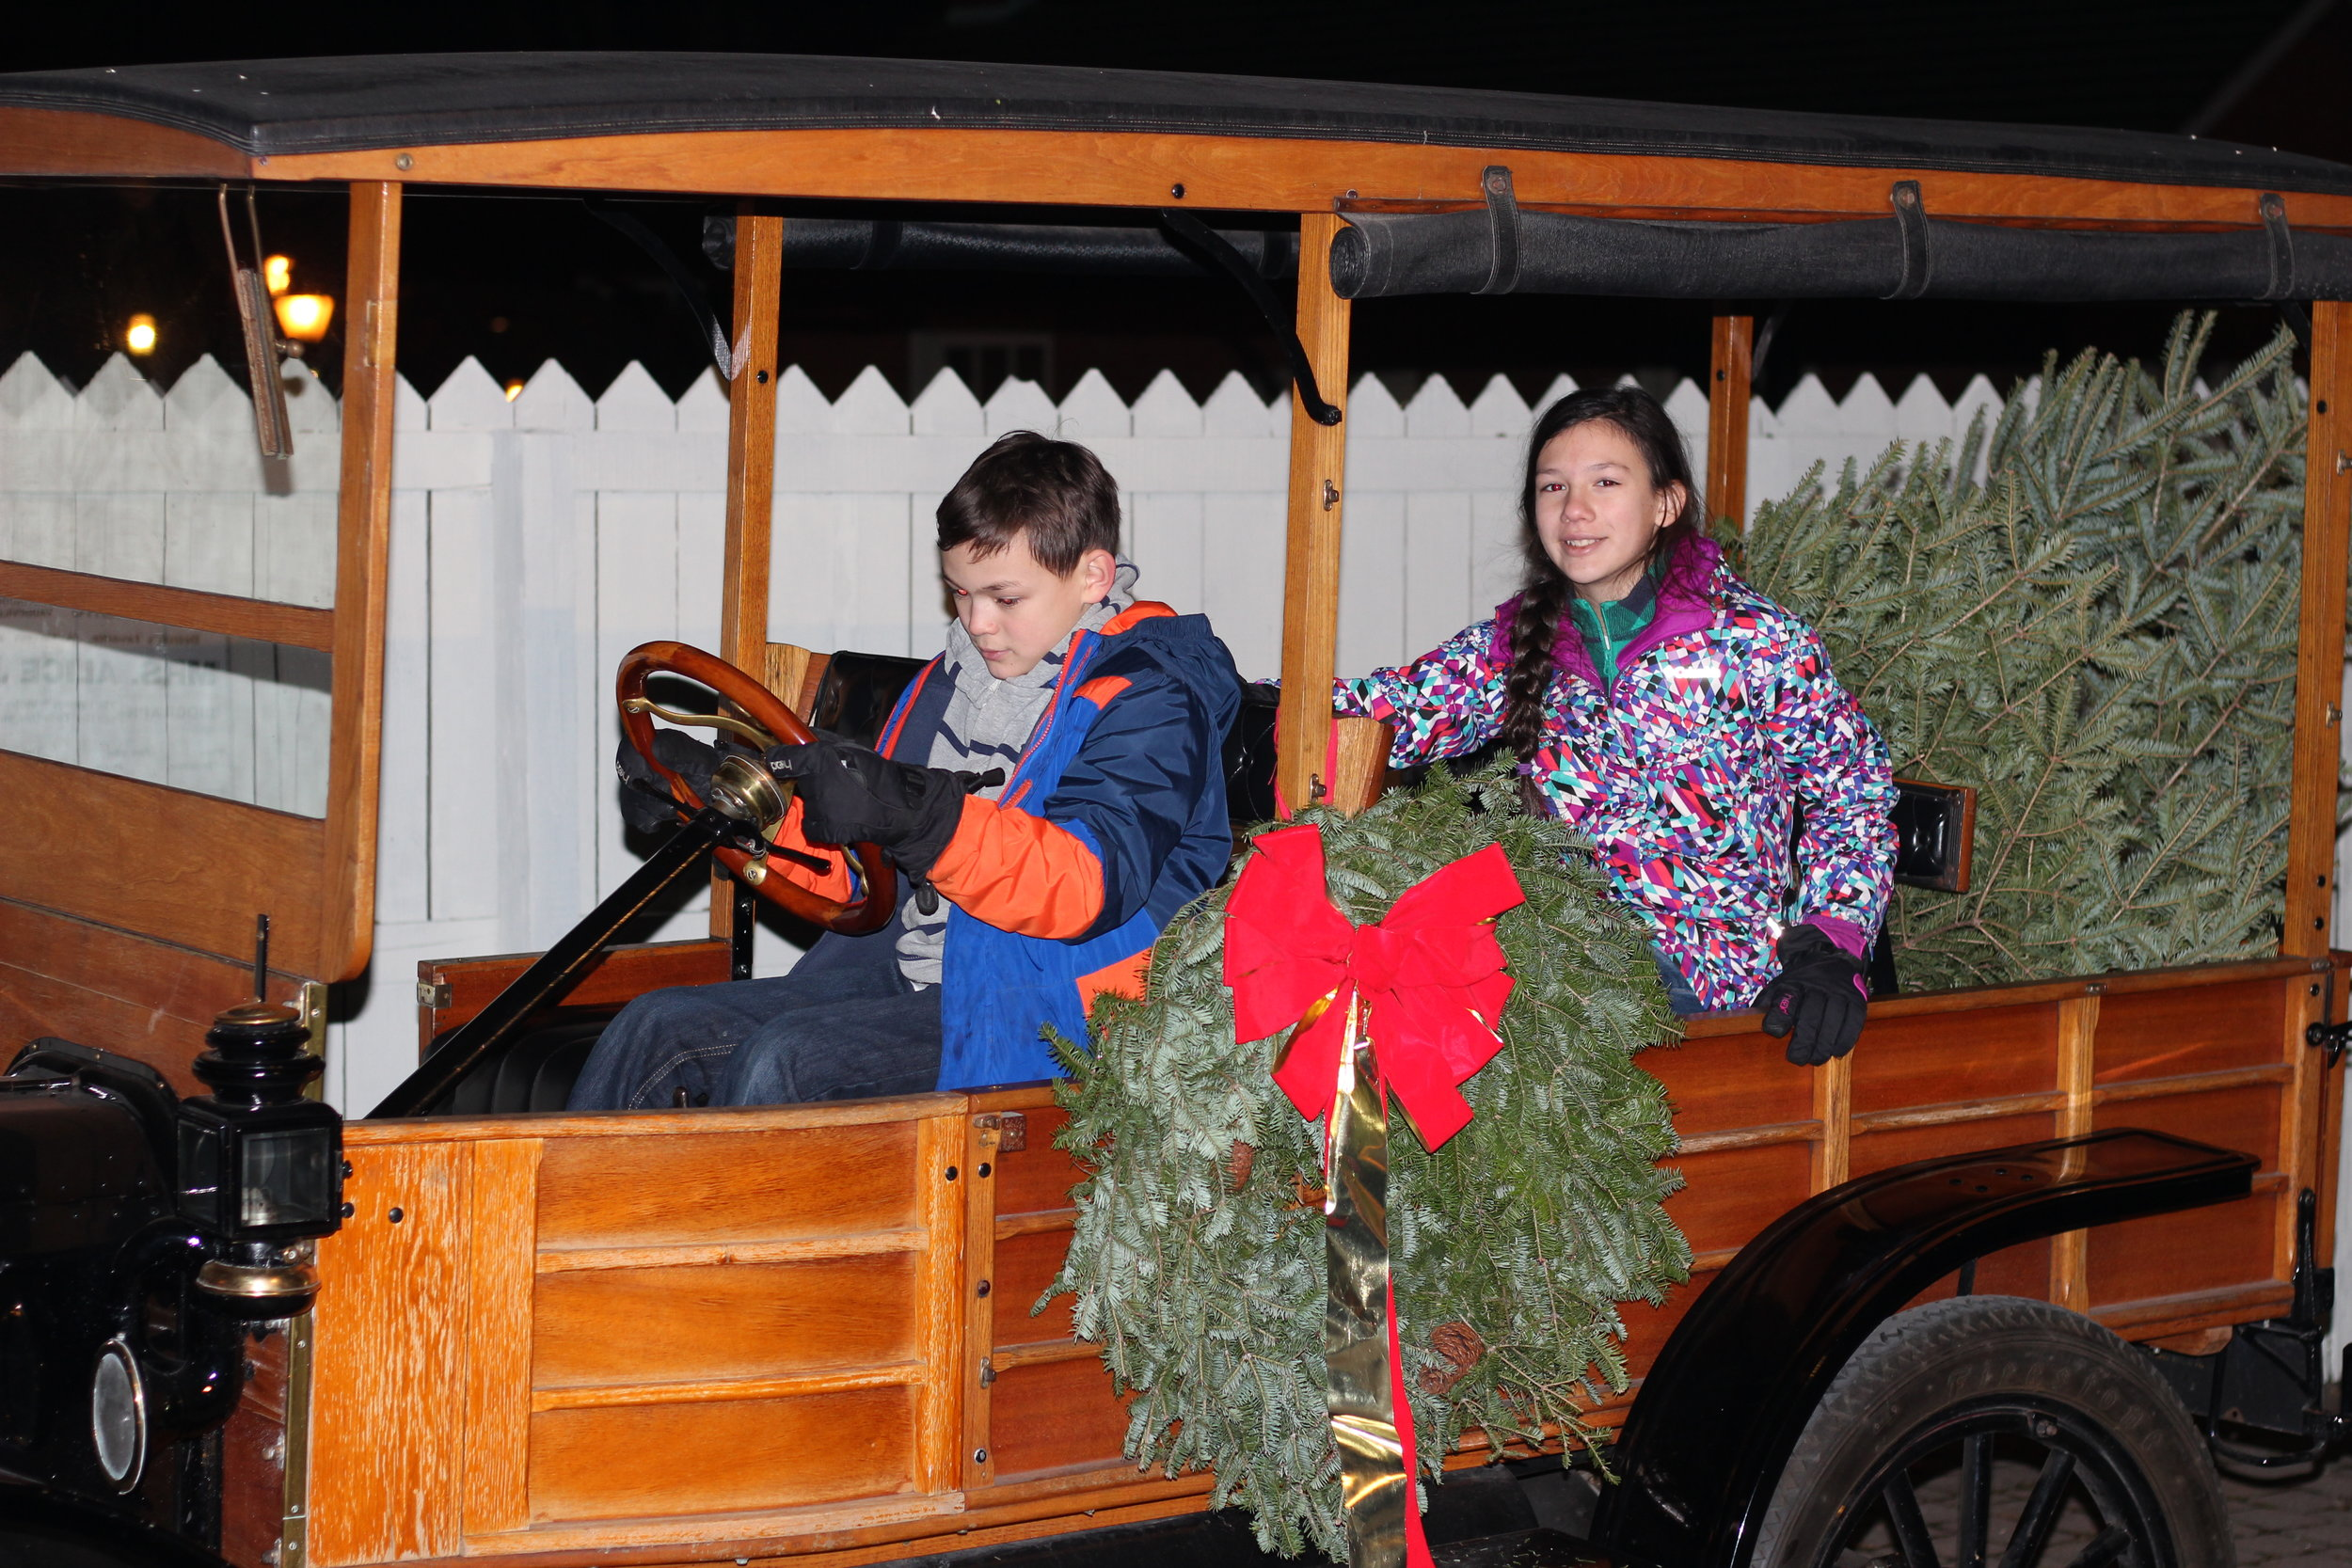 Model T rides for everyone! @ Holiday Nights, Greenfield Village